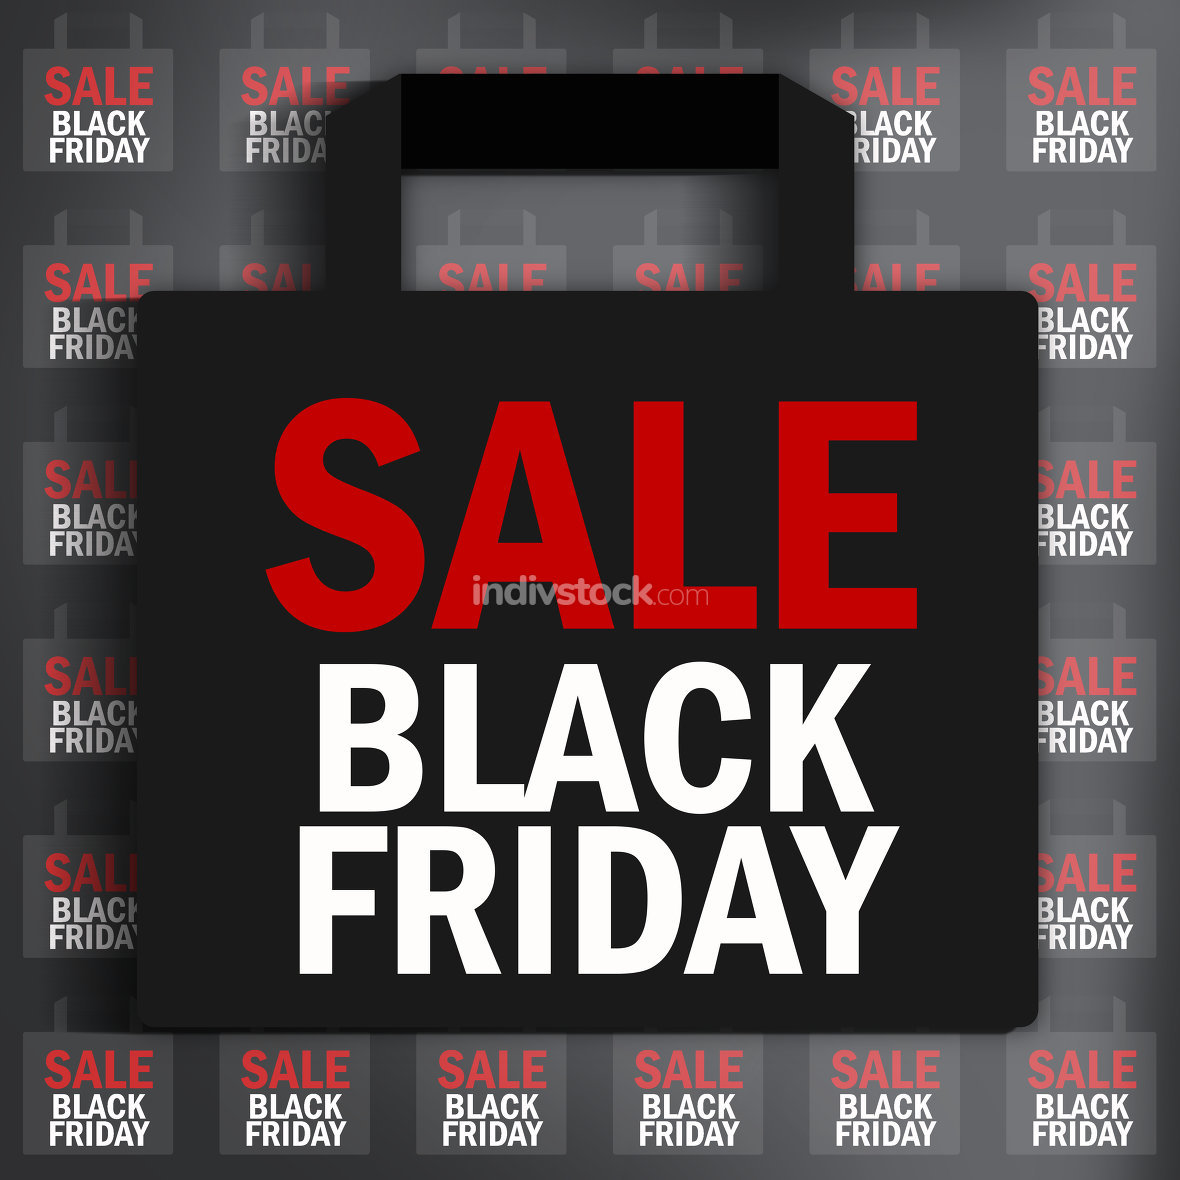 black friday sale bags transparent